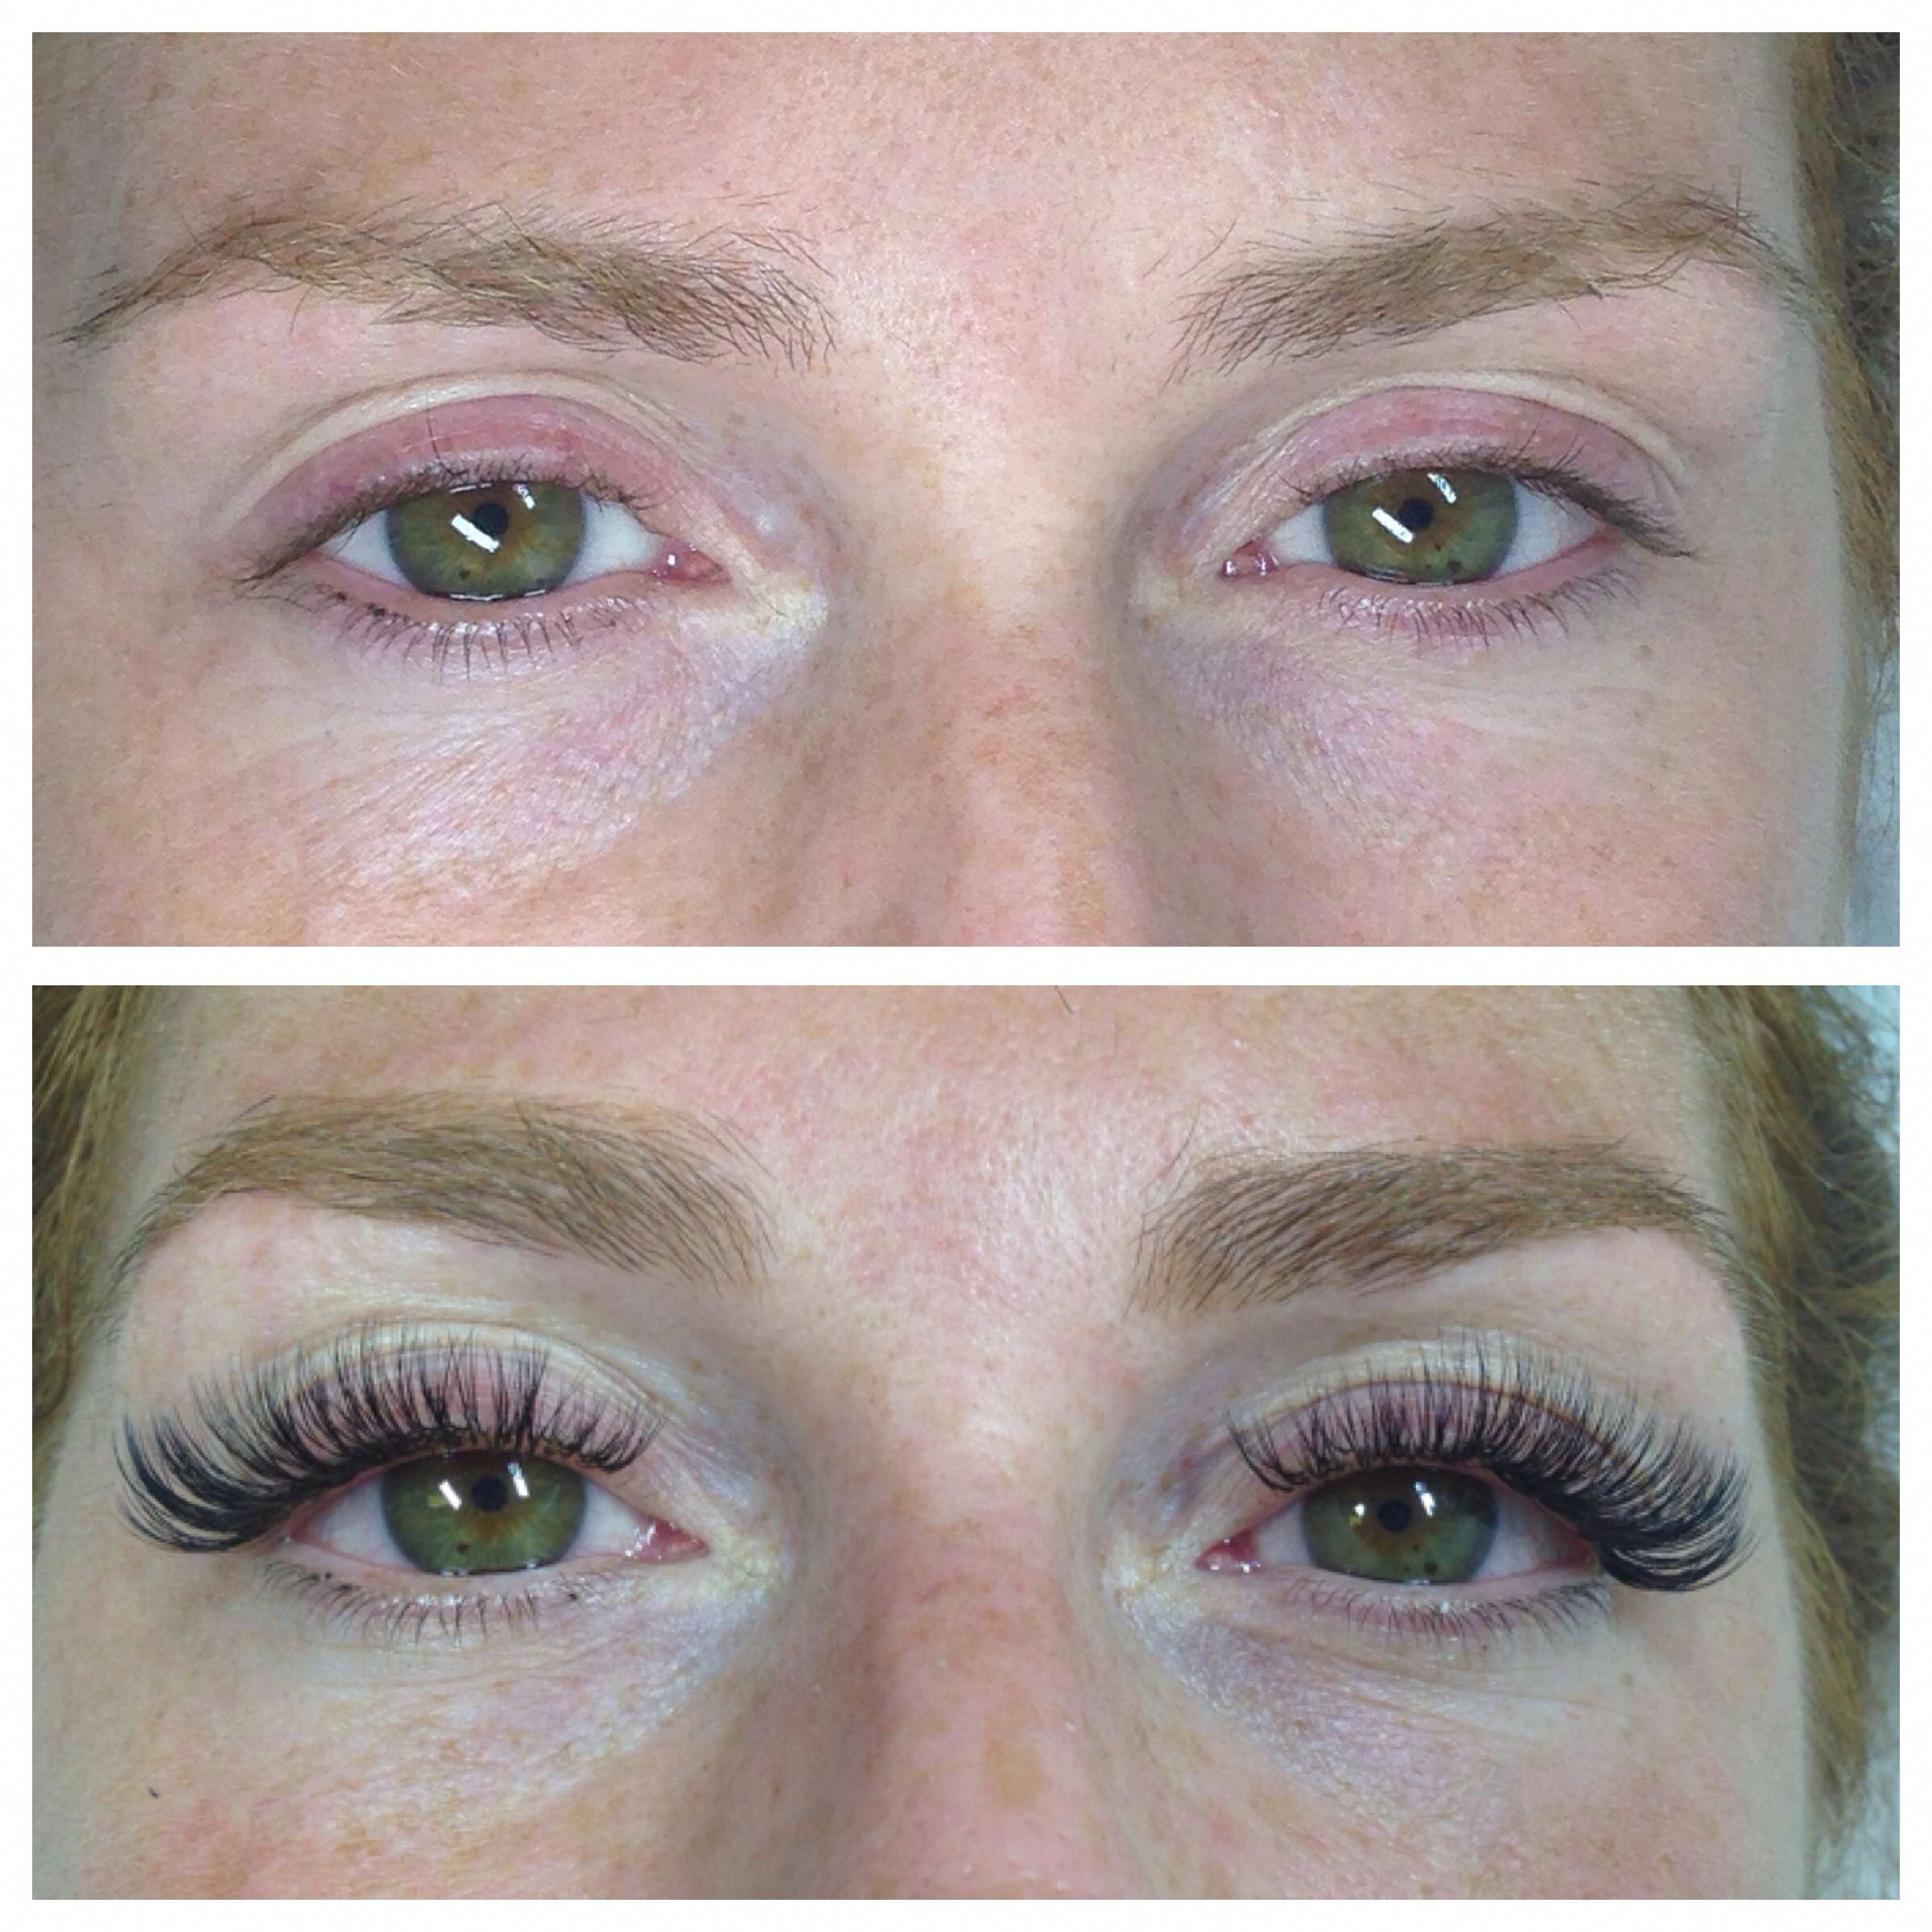 Eyelash extensions, before and after Eyelash extensions